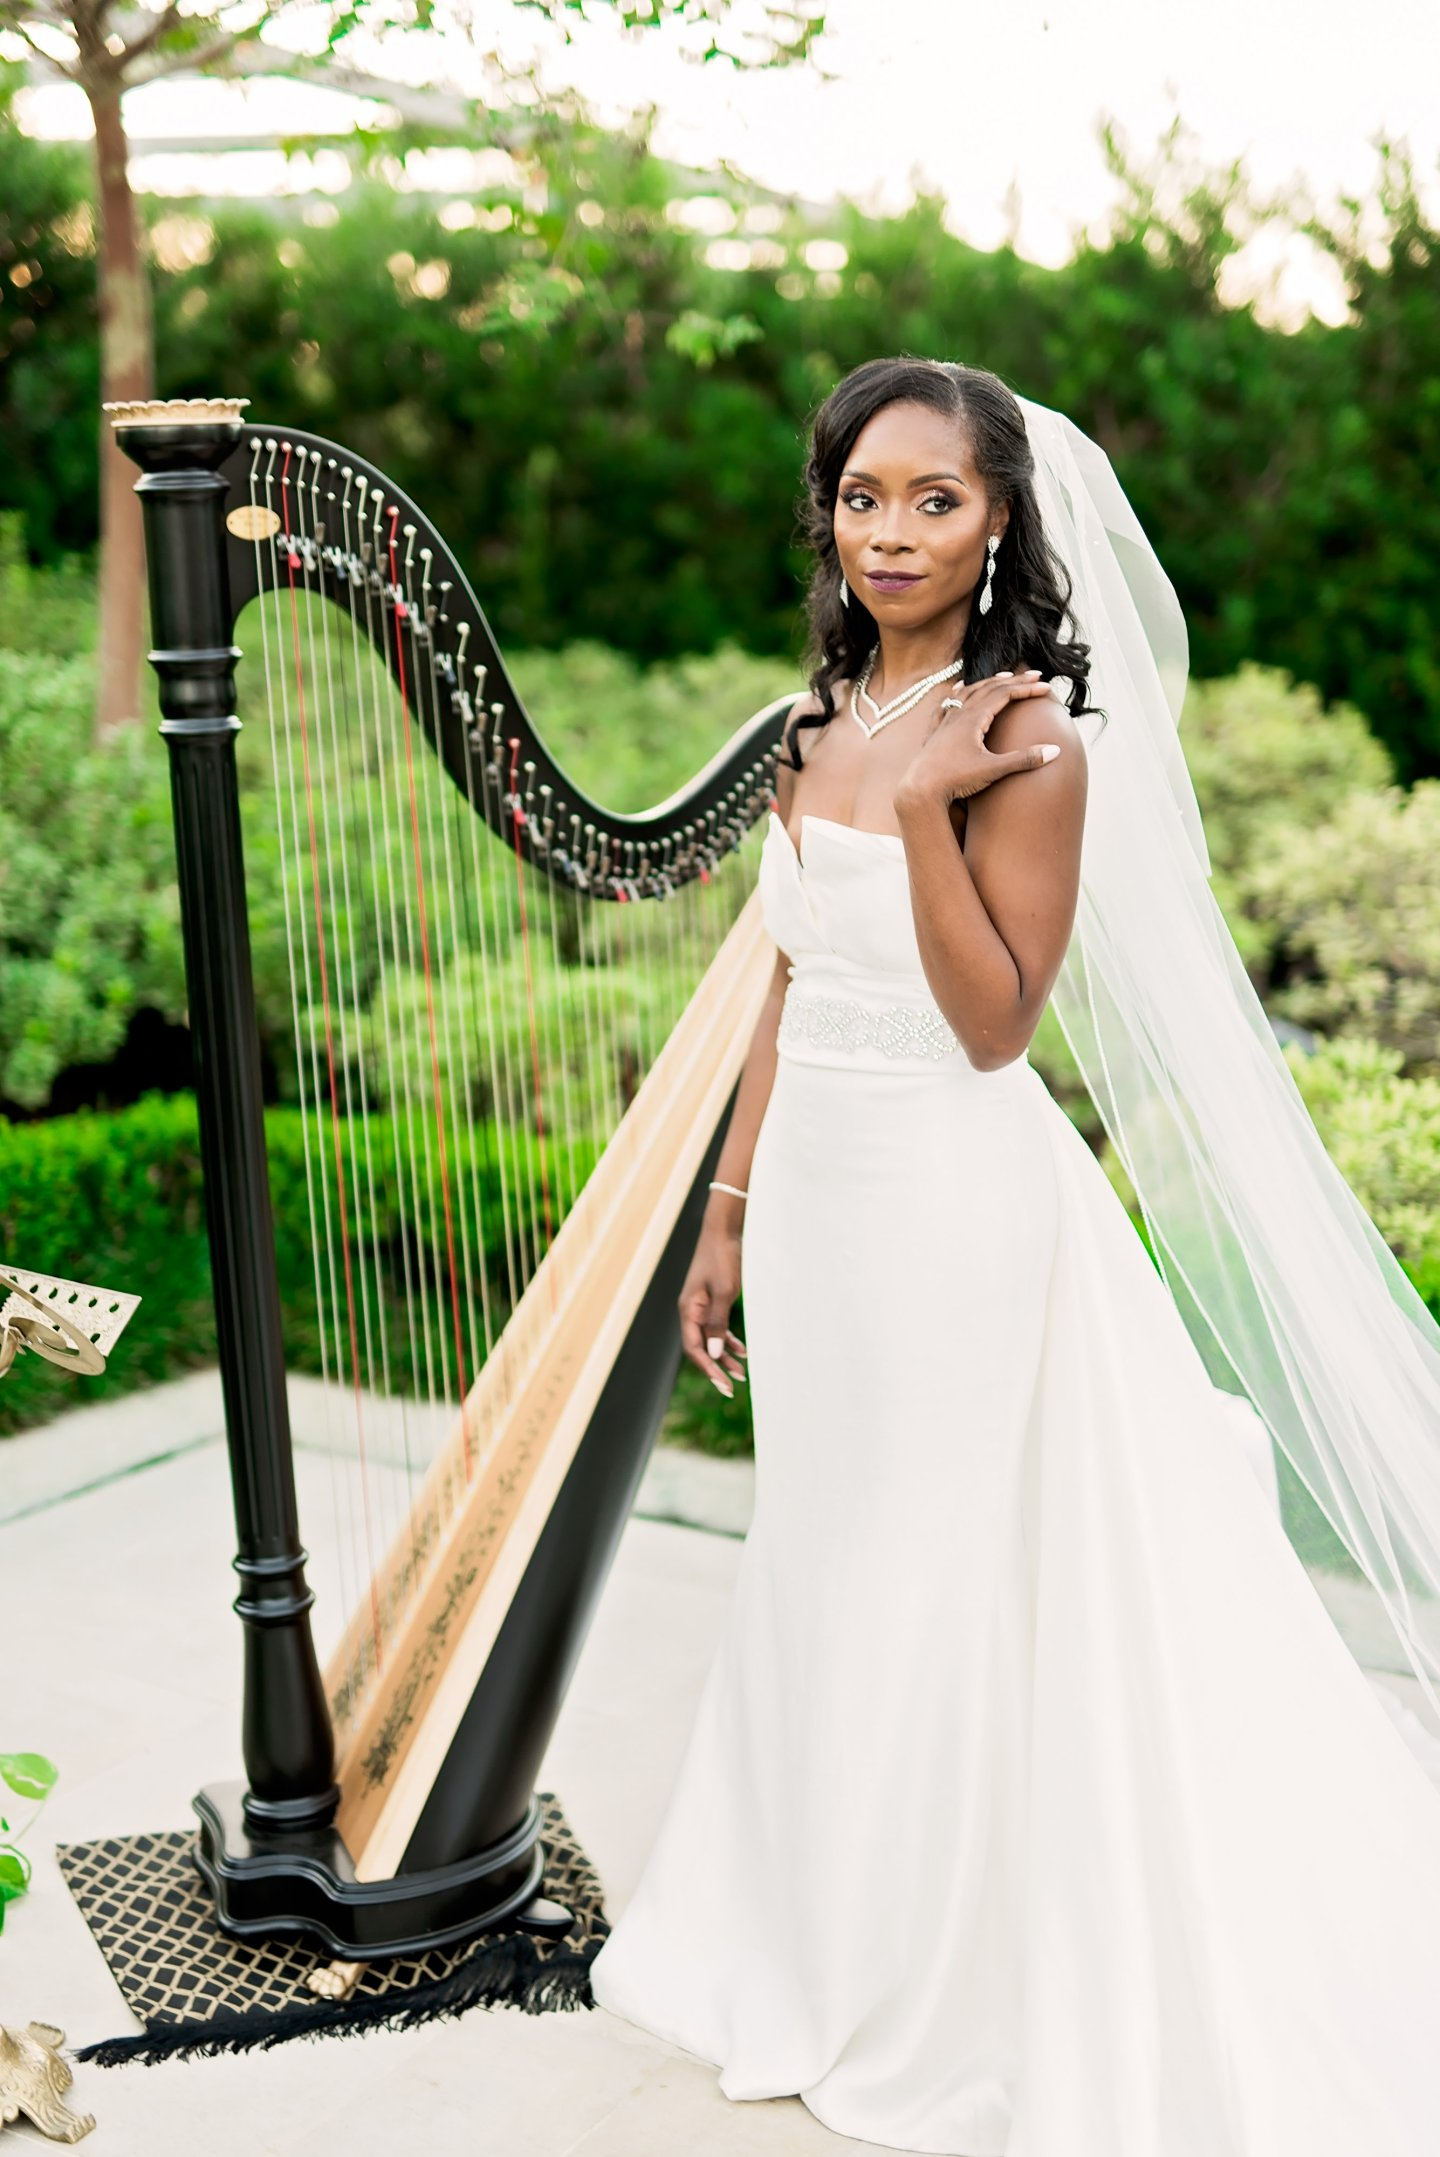 Andre-and-Gina-Pharris-Photography-0059 Houston, TX Wedding at the Buffalo Soldier Museum